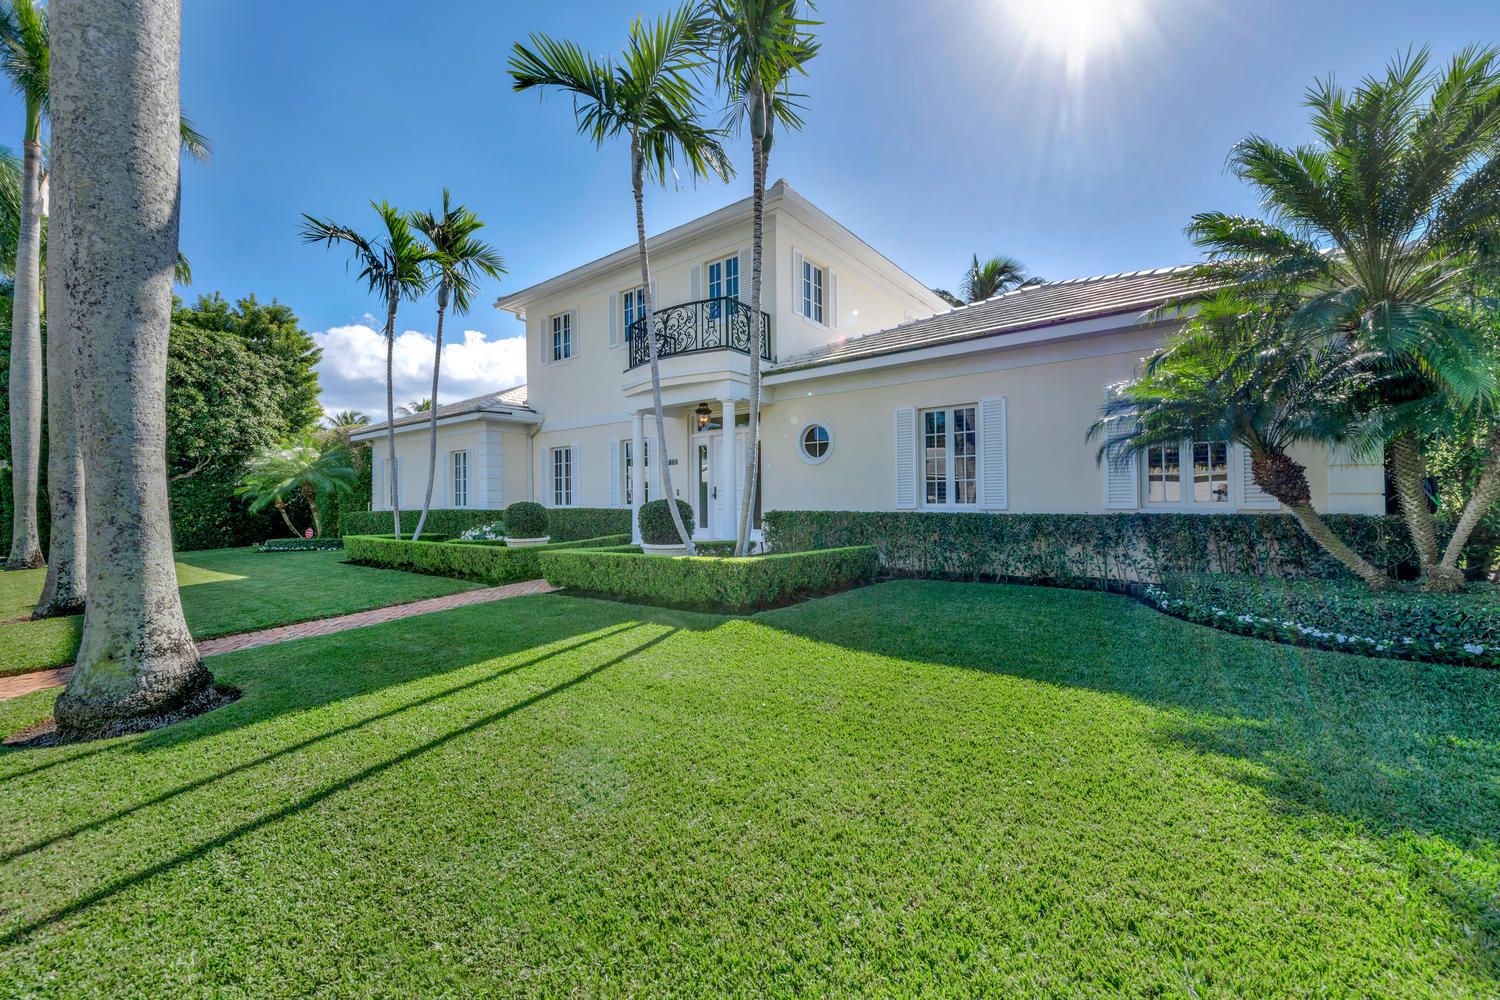 280 List Road, Palm Beach, Florida 33480, 5 Bedrooms Bedrooms, ,6.1 BathroomsBathrooms,Single Family,For Sale,List,RX-10495420